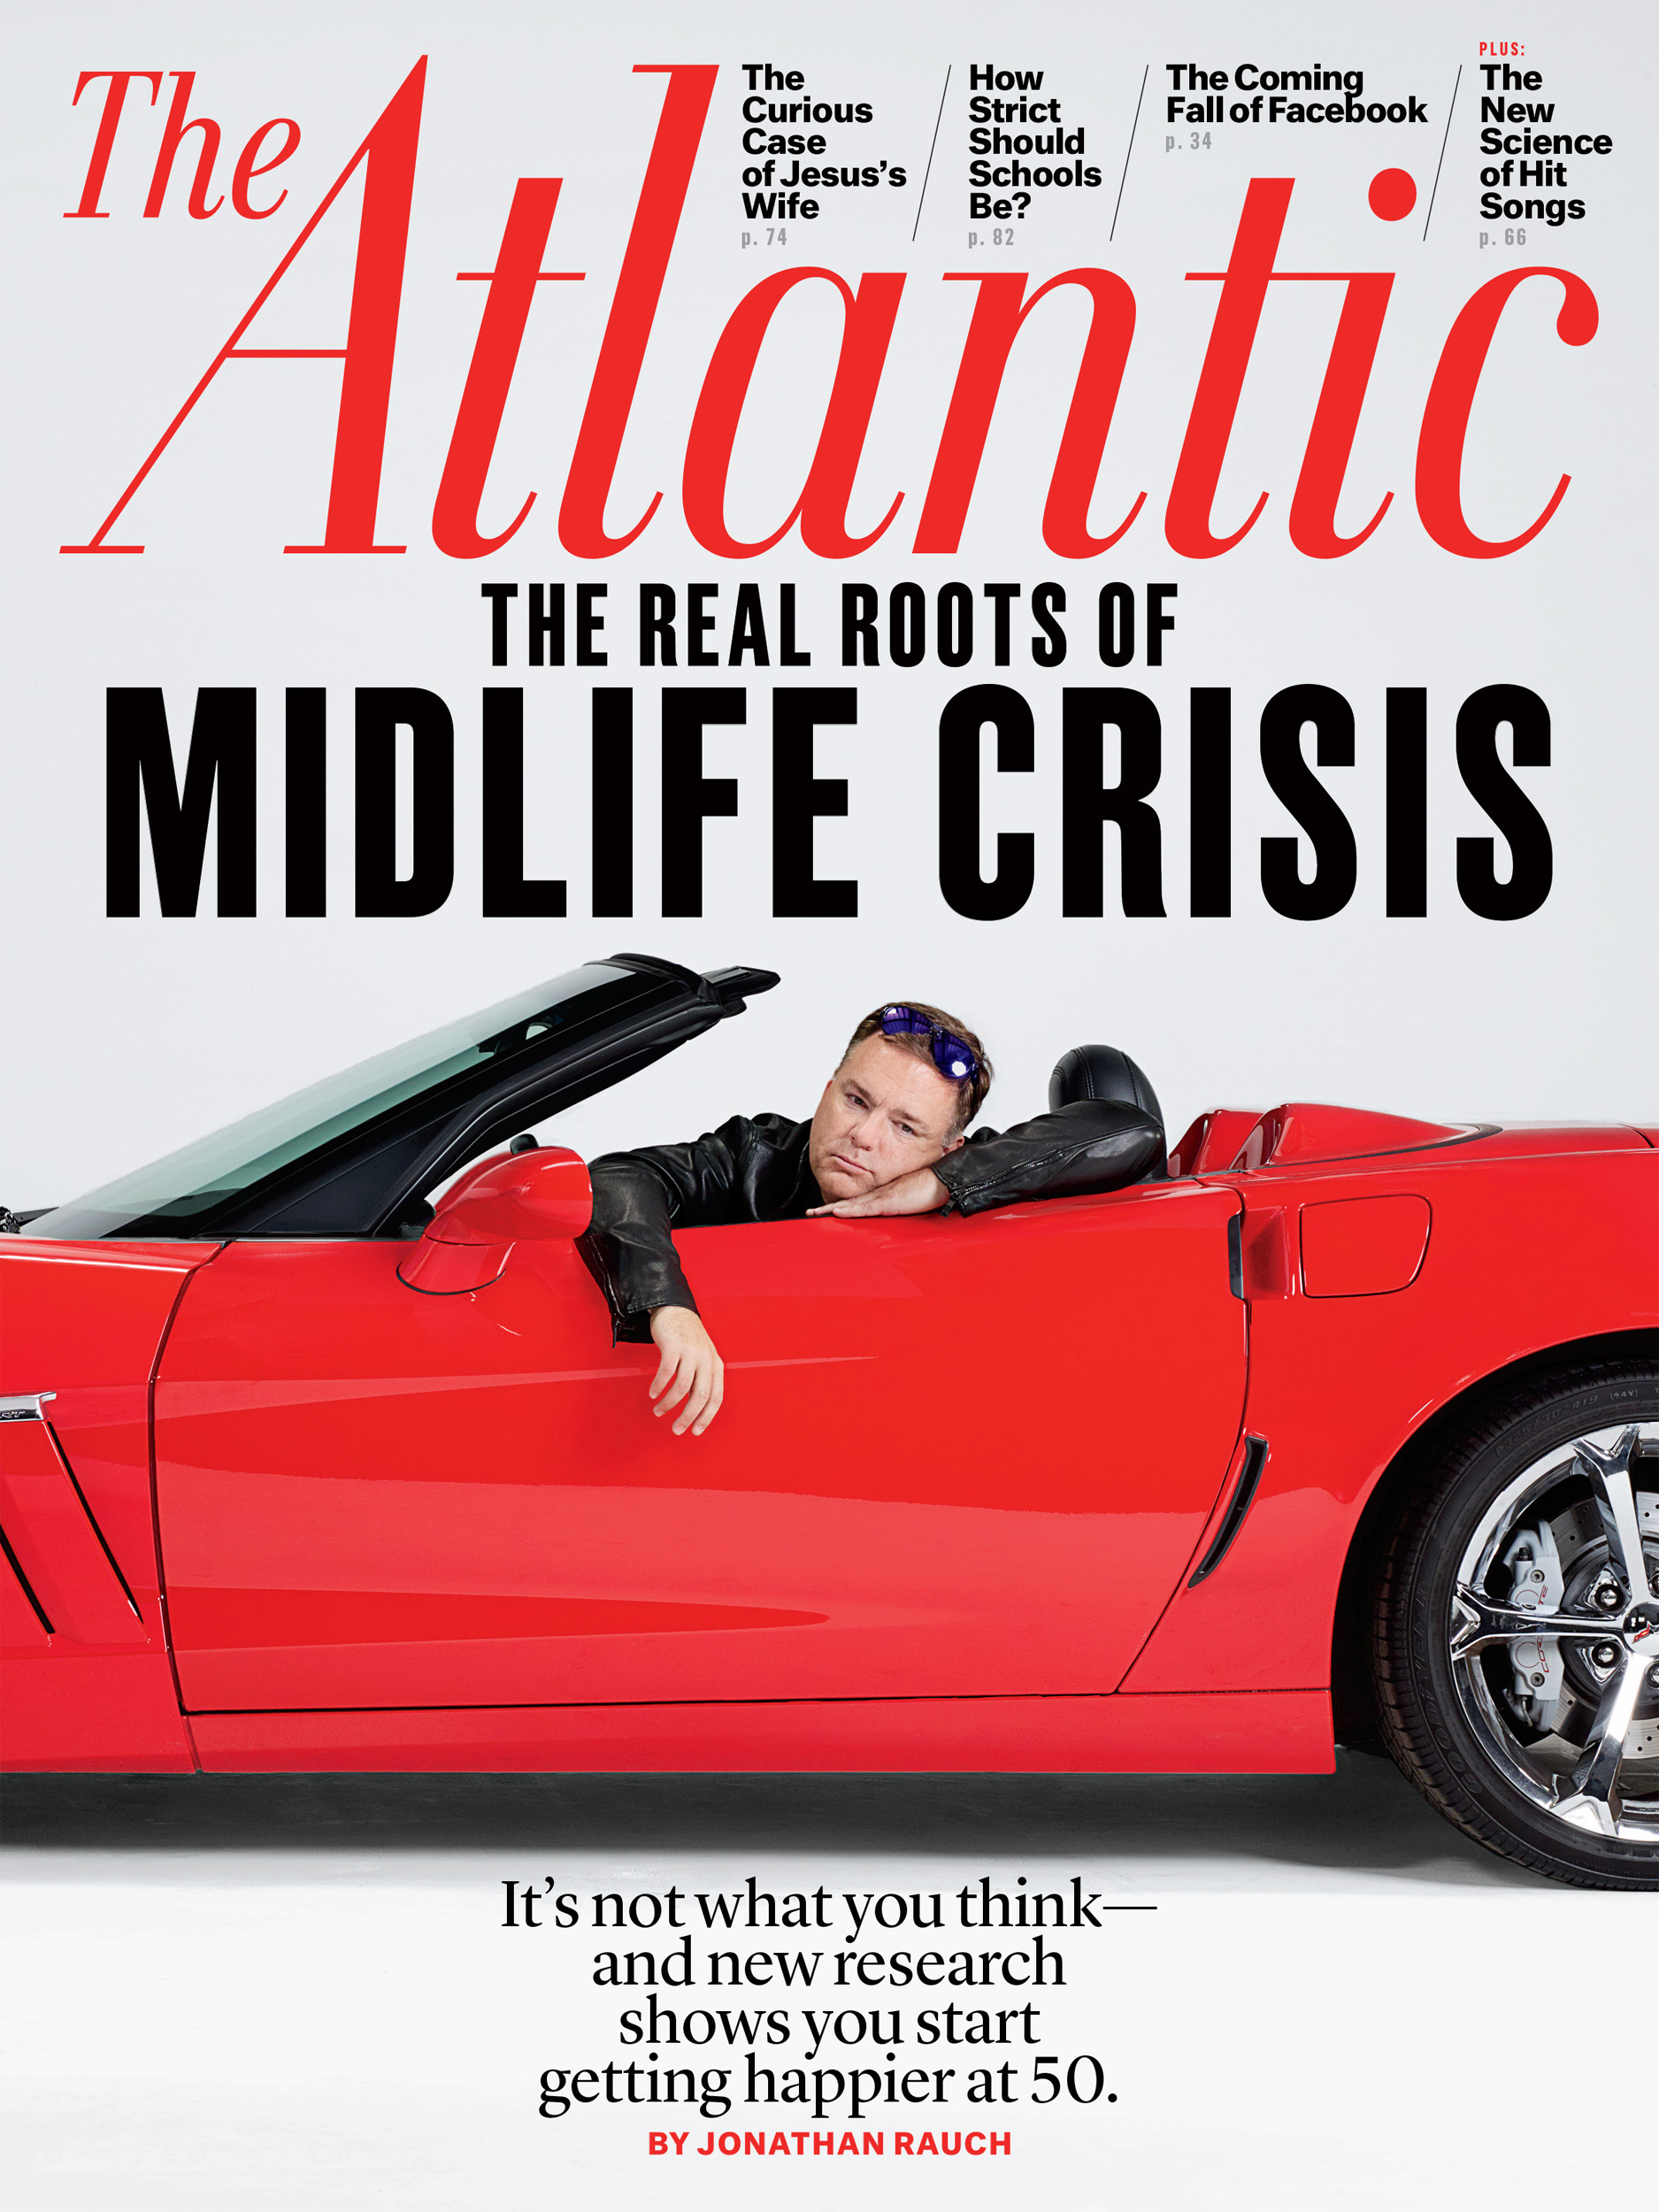 Midlife Crisis,  The Atlantic